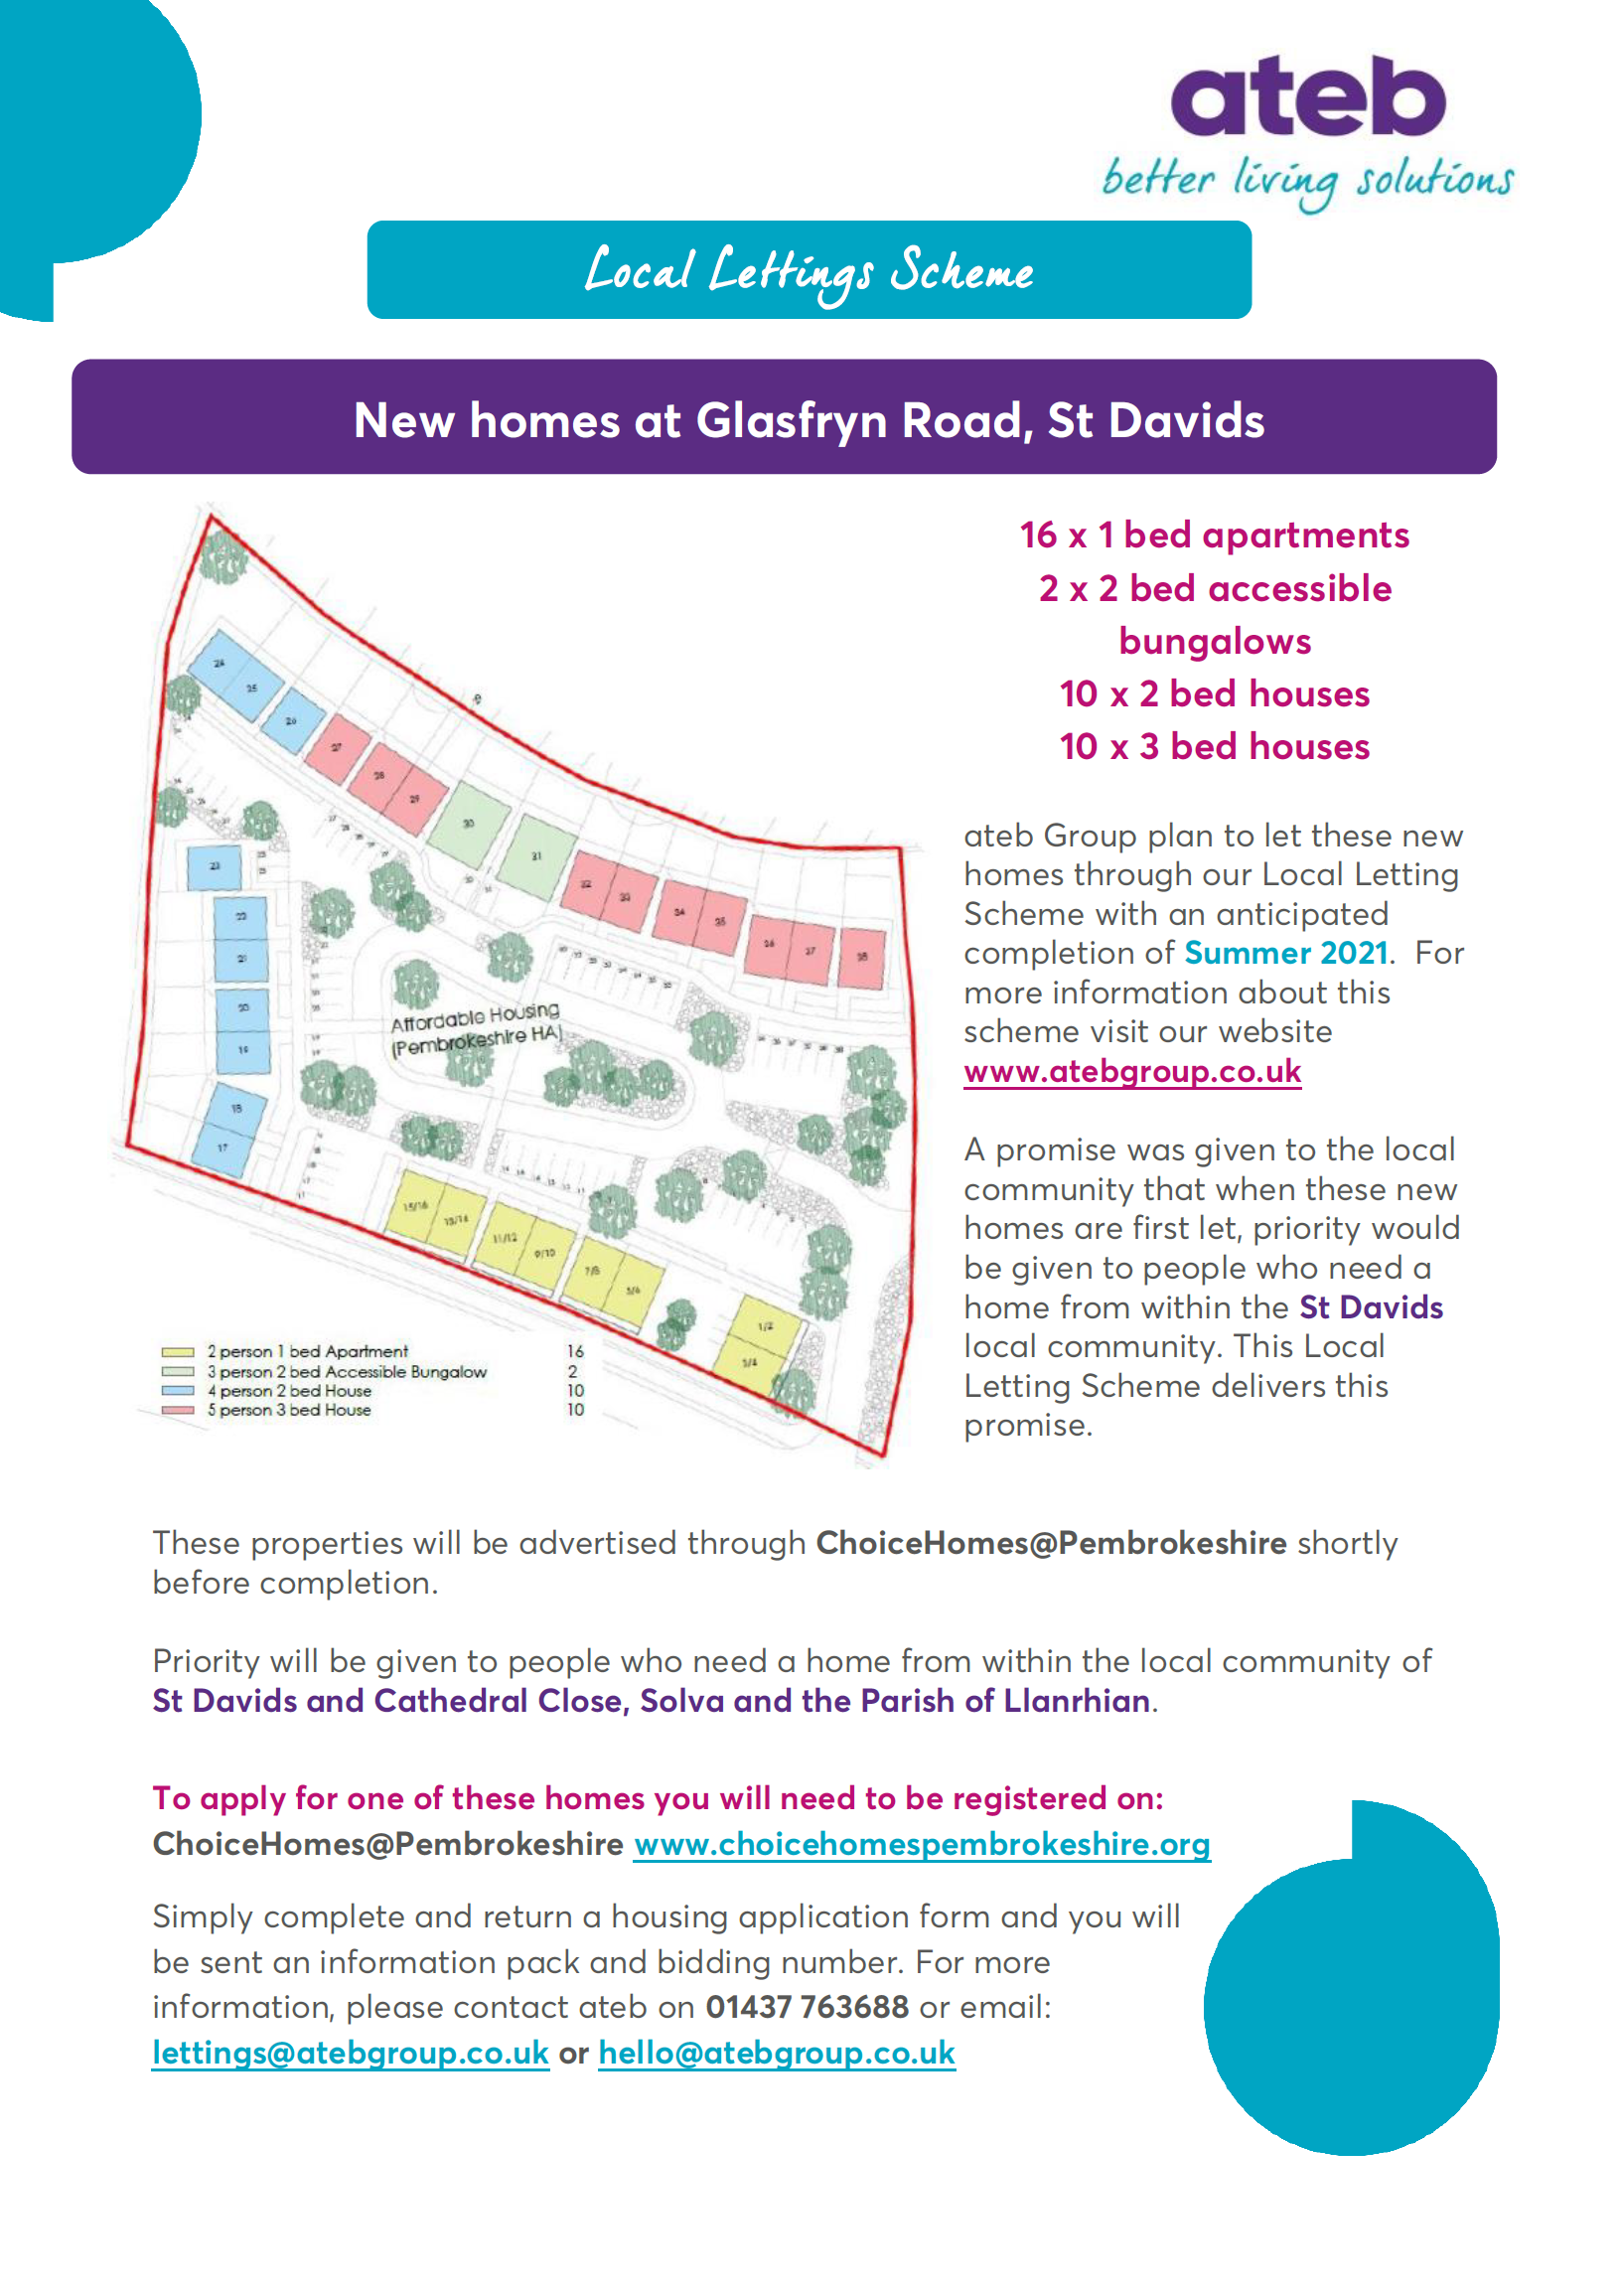 Here is a sneak peak of the Local Lettings Scheme for the new homes at Swn Y Mor, Glasfryn Road…